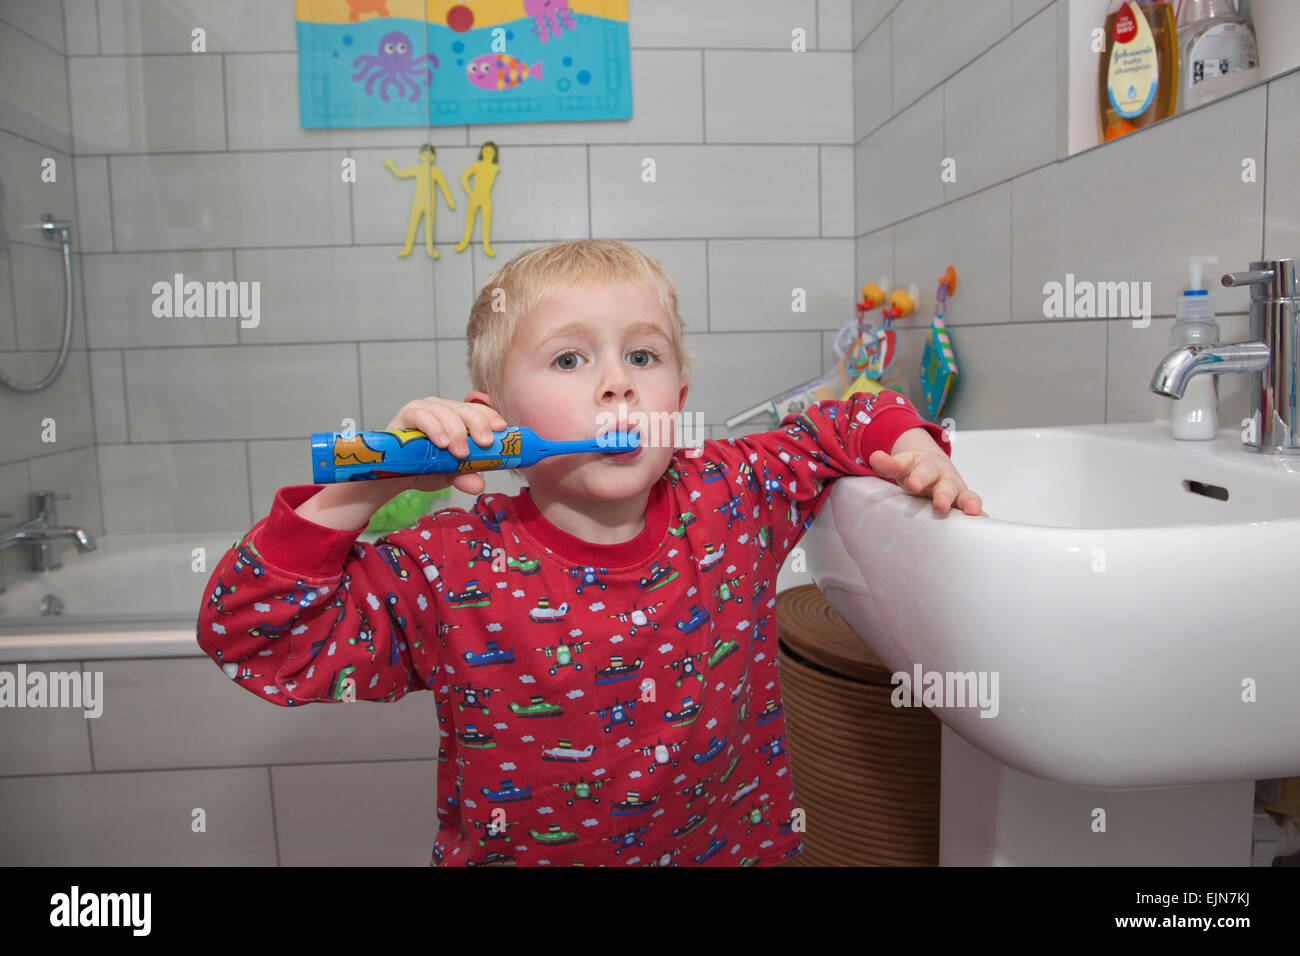 Four year old boy brushing his teeth with an electric toothbrush in the bathroom before bedtime, UK - Stock Image